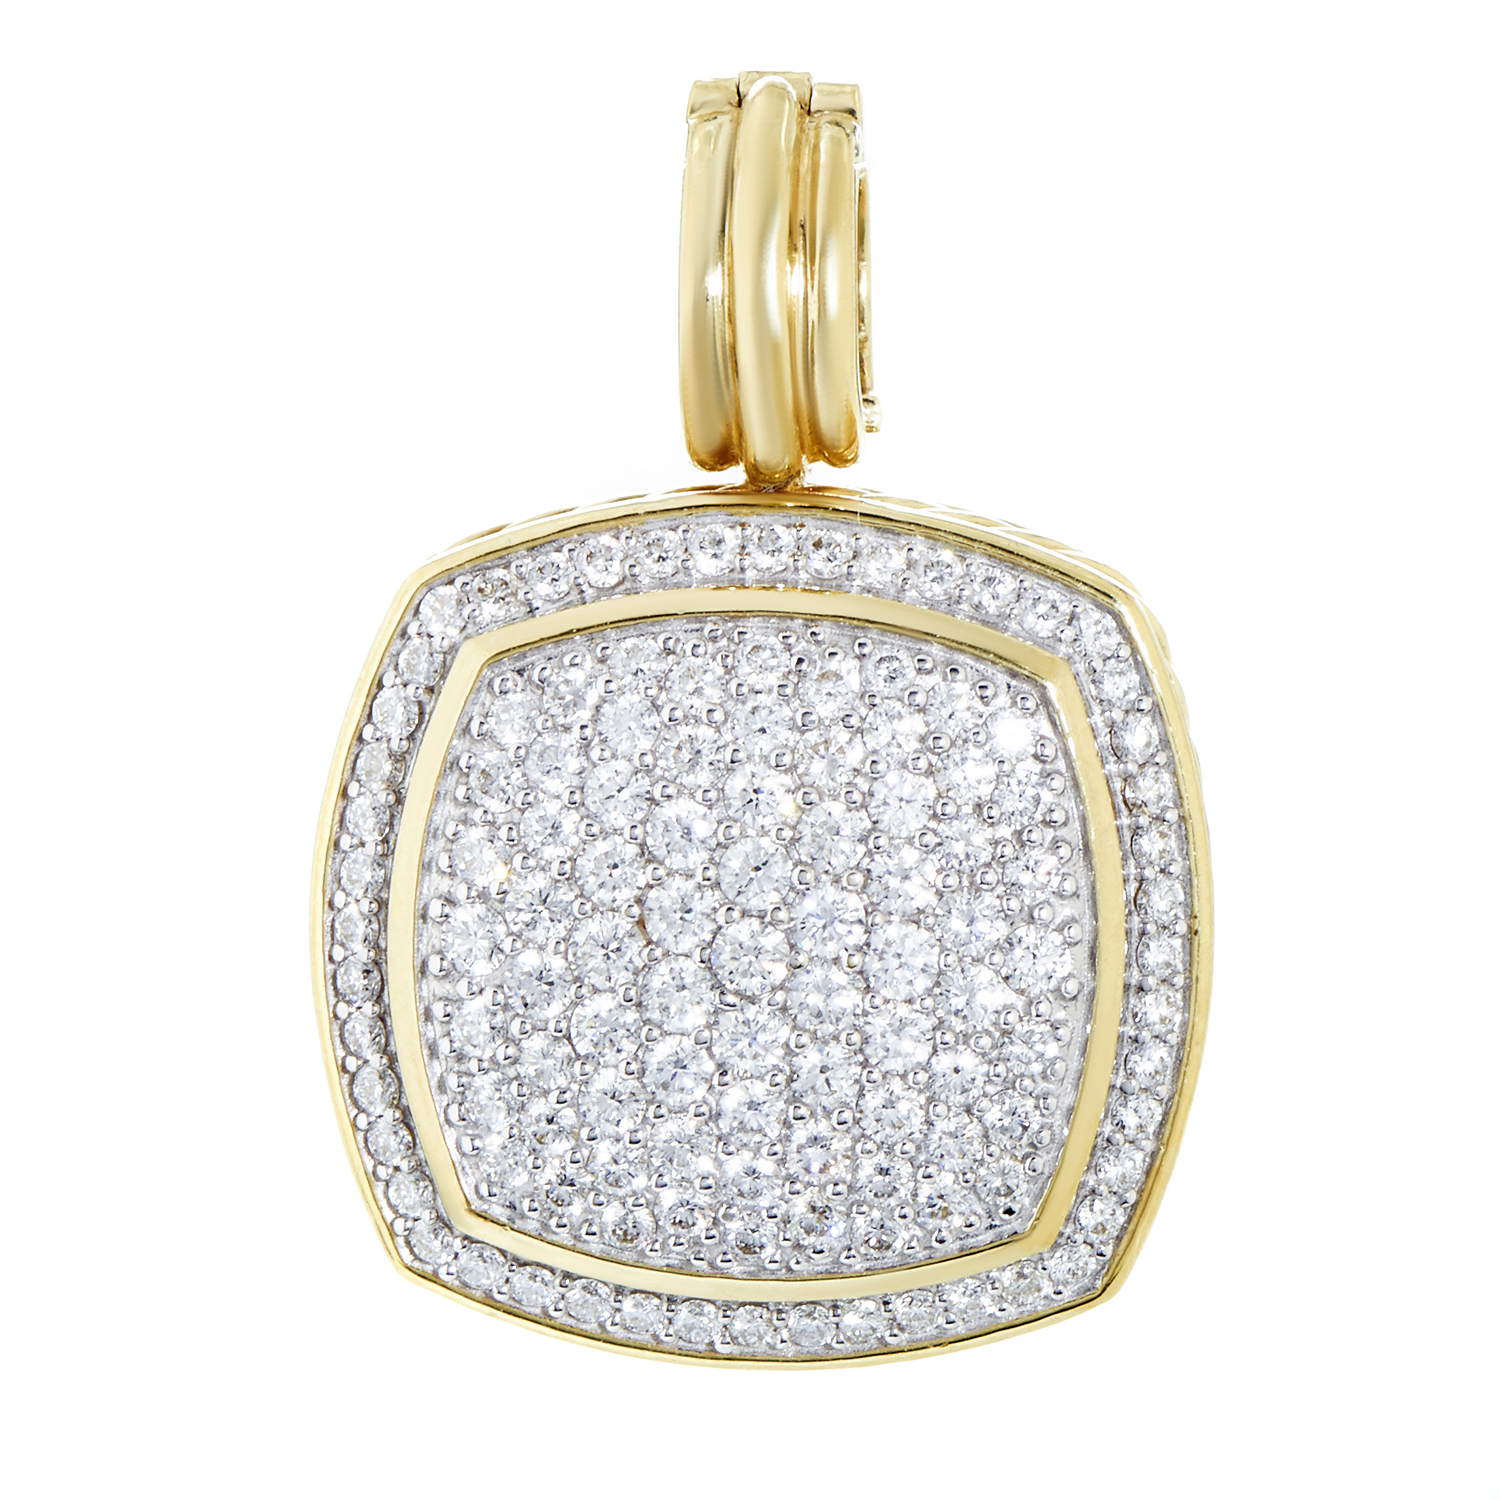 David Yurman Albion Women's 18K Yellow Gold Full Diamond Pave Pendant